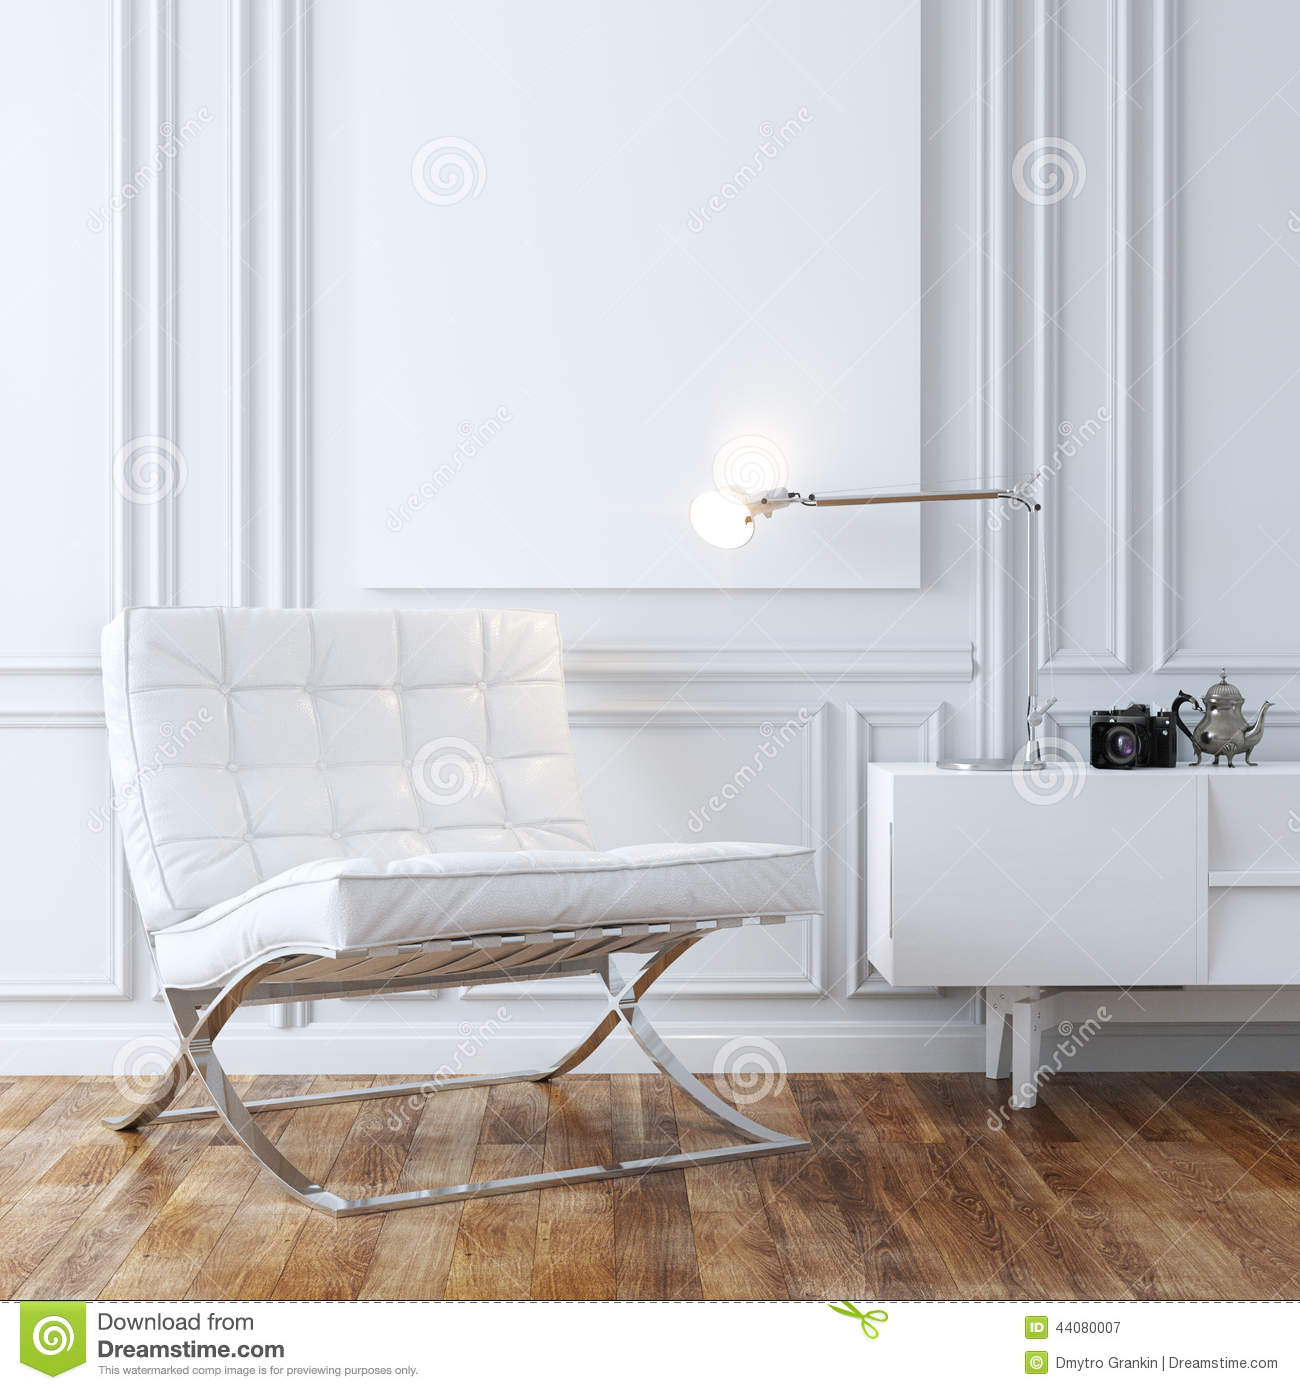 Stylish White Leather Armchair In Classic Interior Design Royalty Free Stock Photography